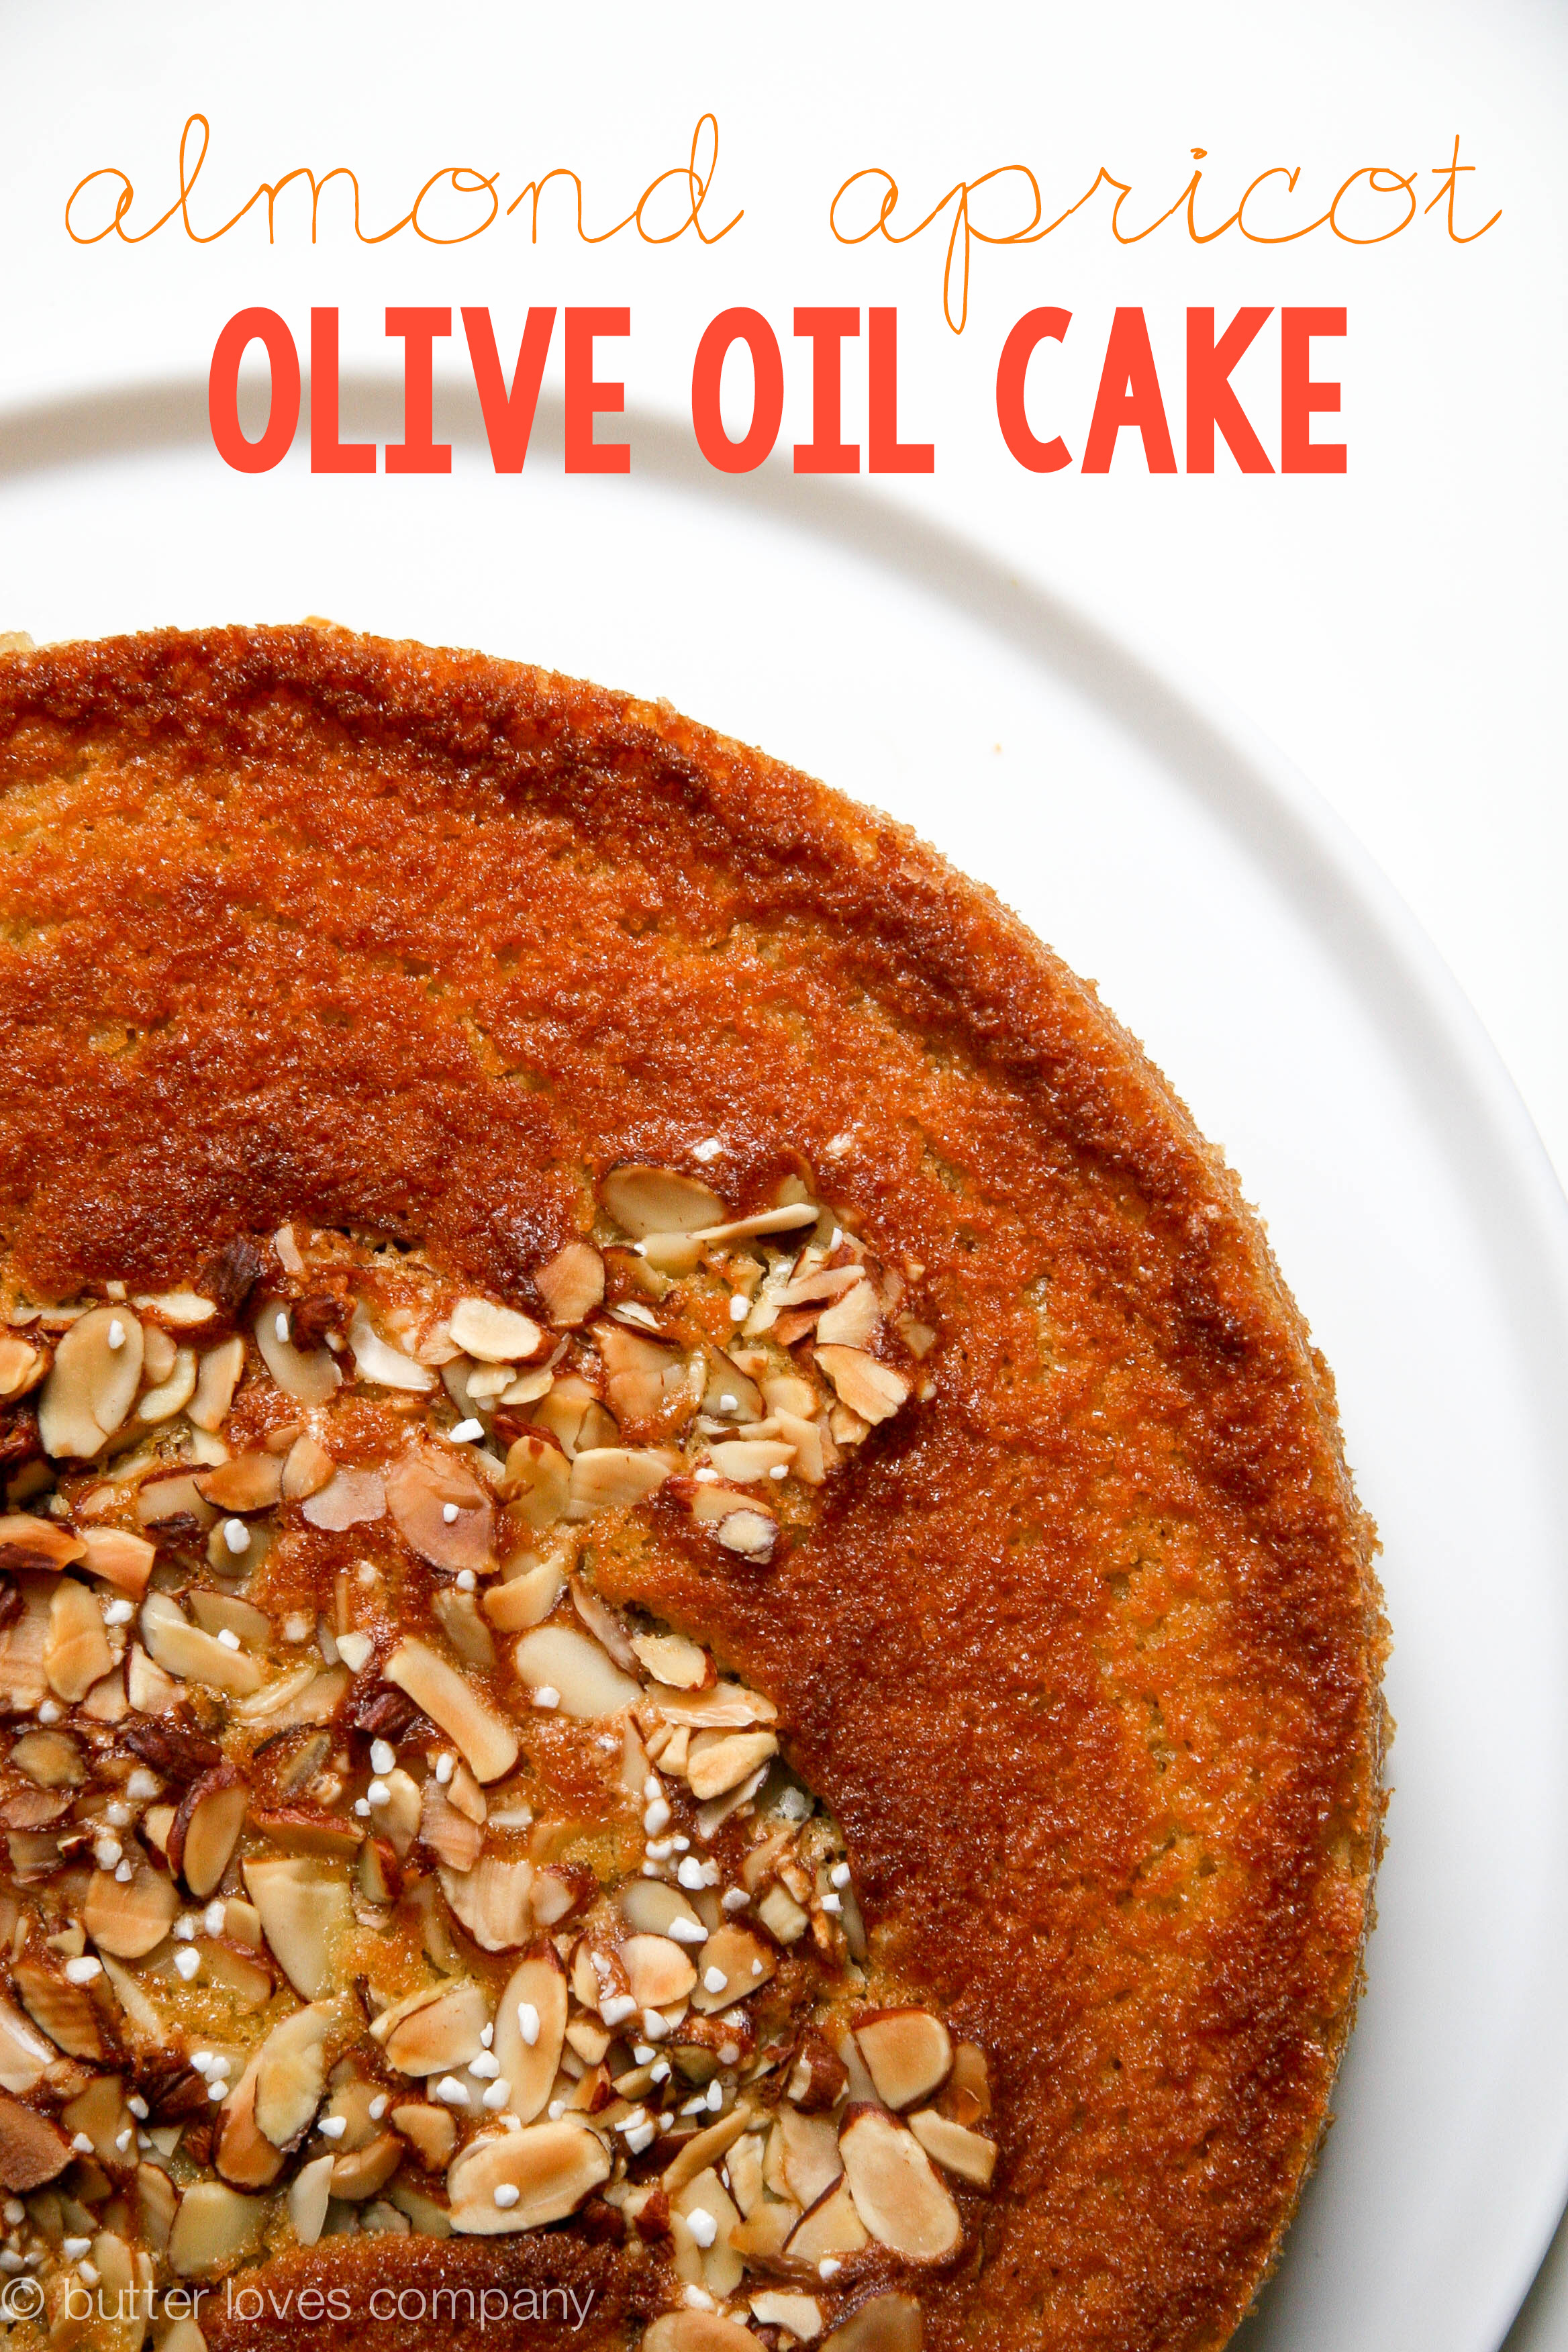 almond-apricot-olive-oil-cake-recipe-9